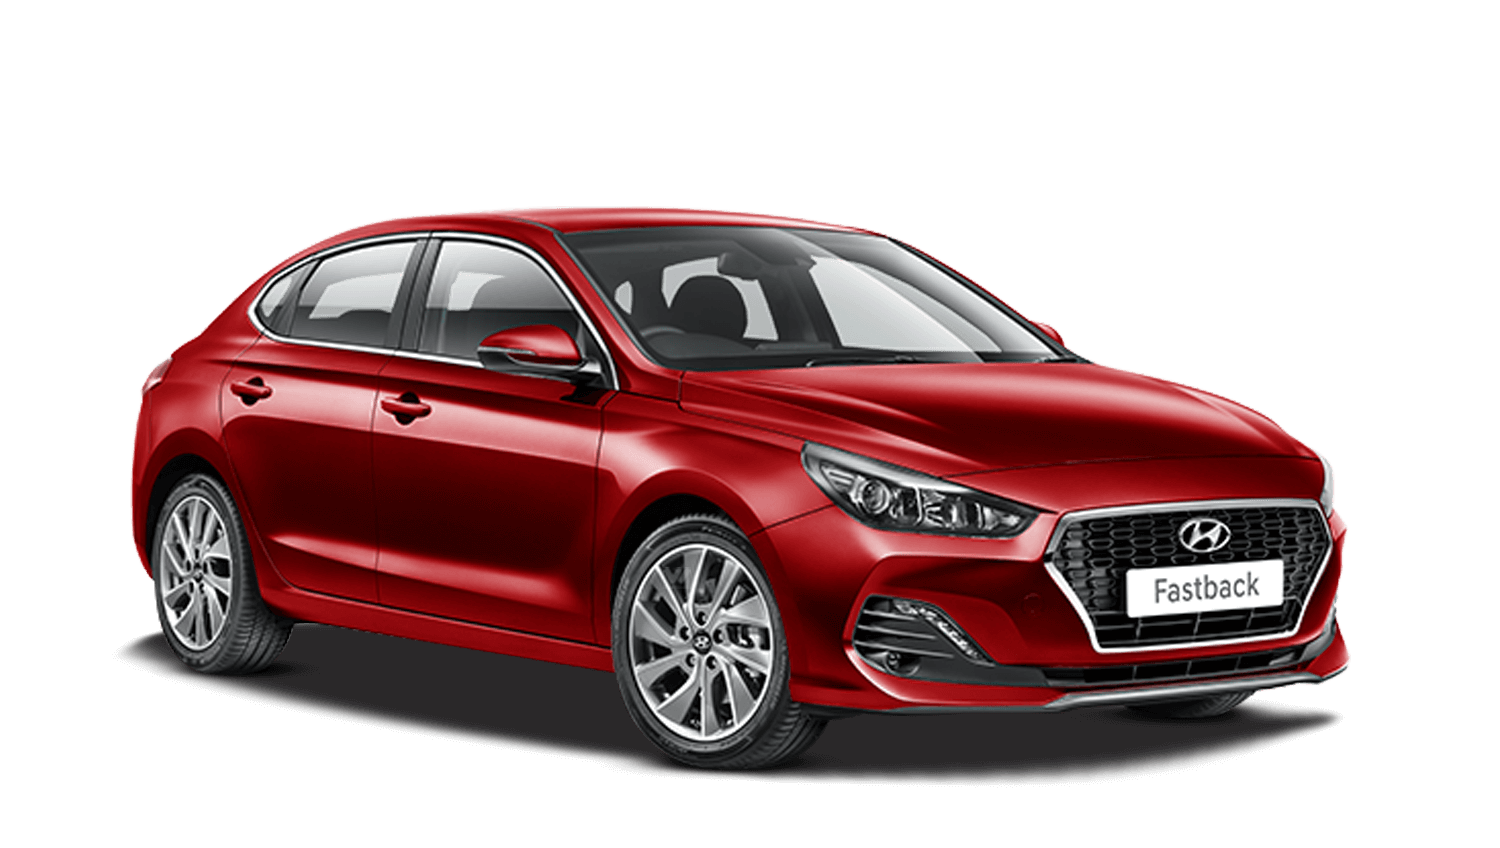 Fiery Red Hyundai I30 Fastback